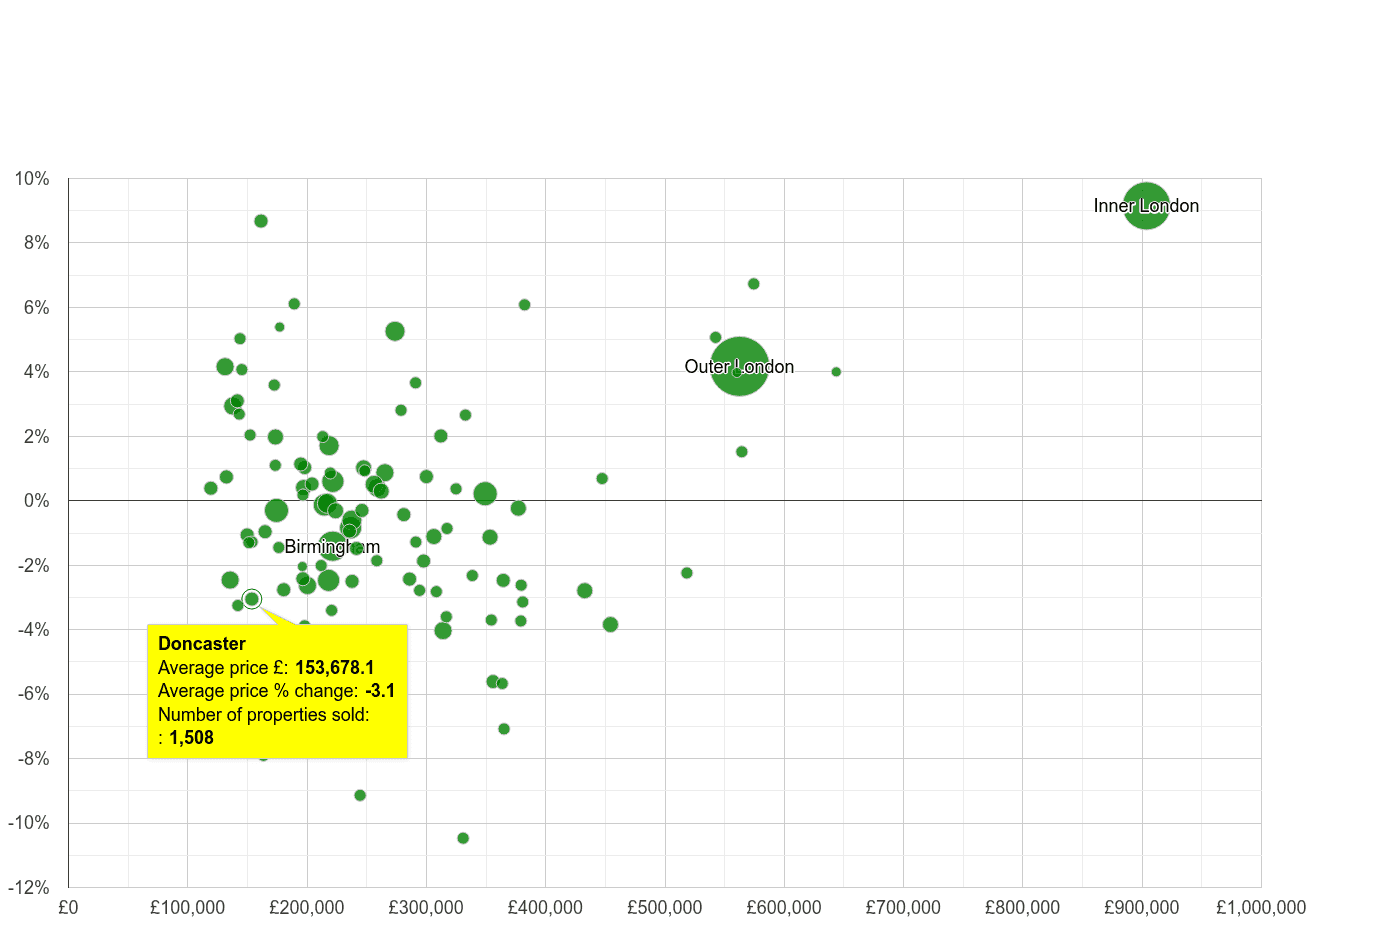 Doncaster house prices compared to other cities